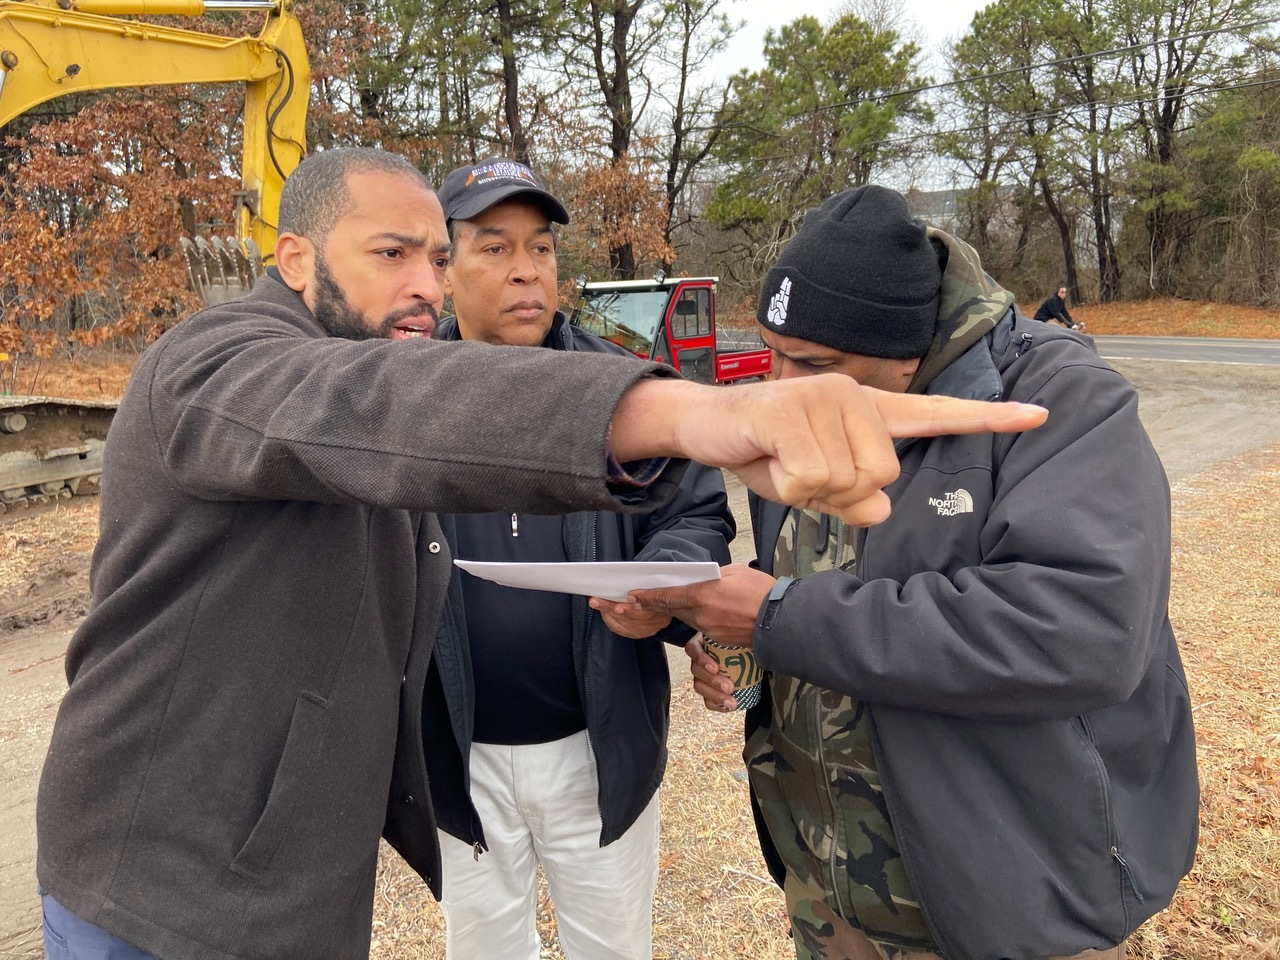 Tribal Trustees Bryan Polite and Lance Gumbs with tribe member Barre Hamp at the work site recently. COURTESY SHINNECOCK NATION